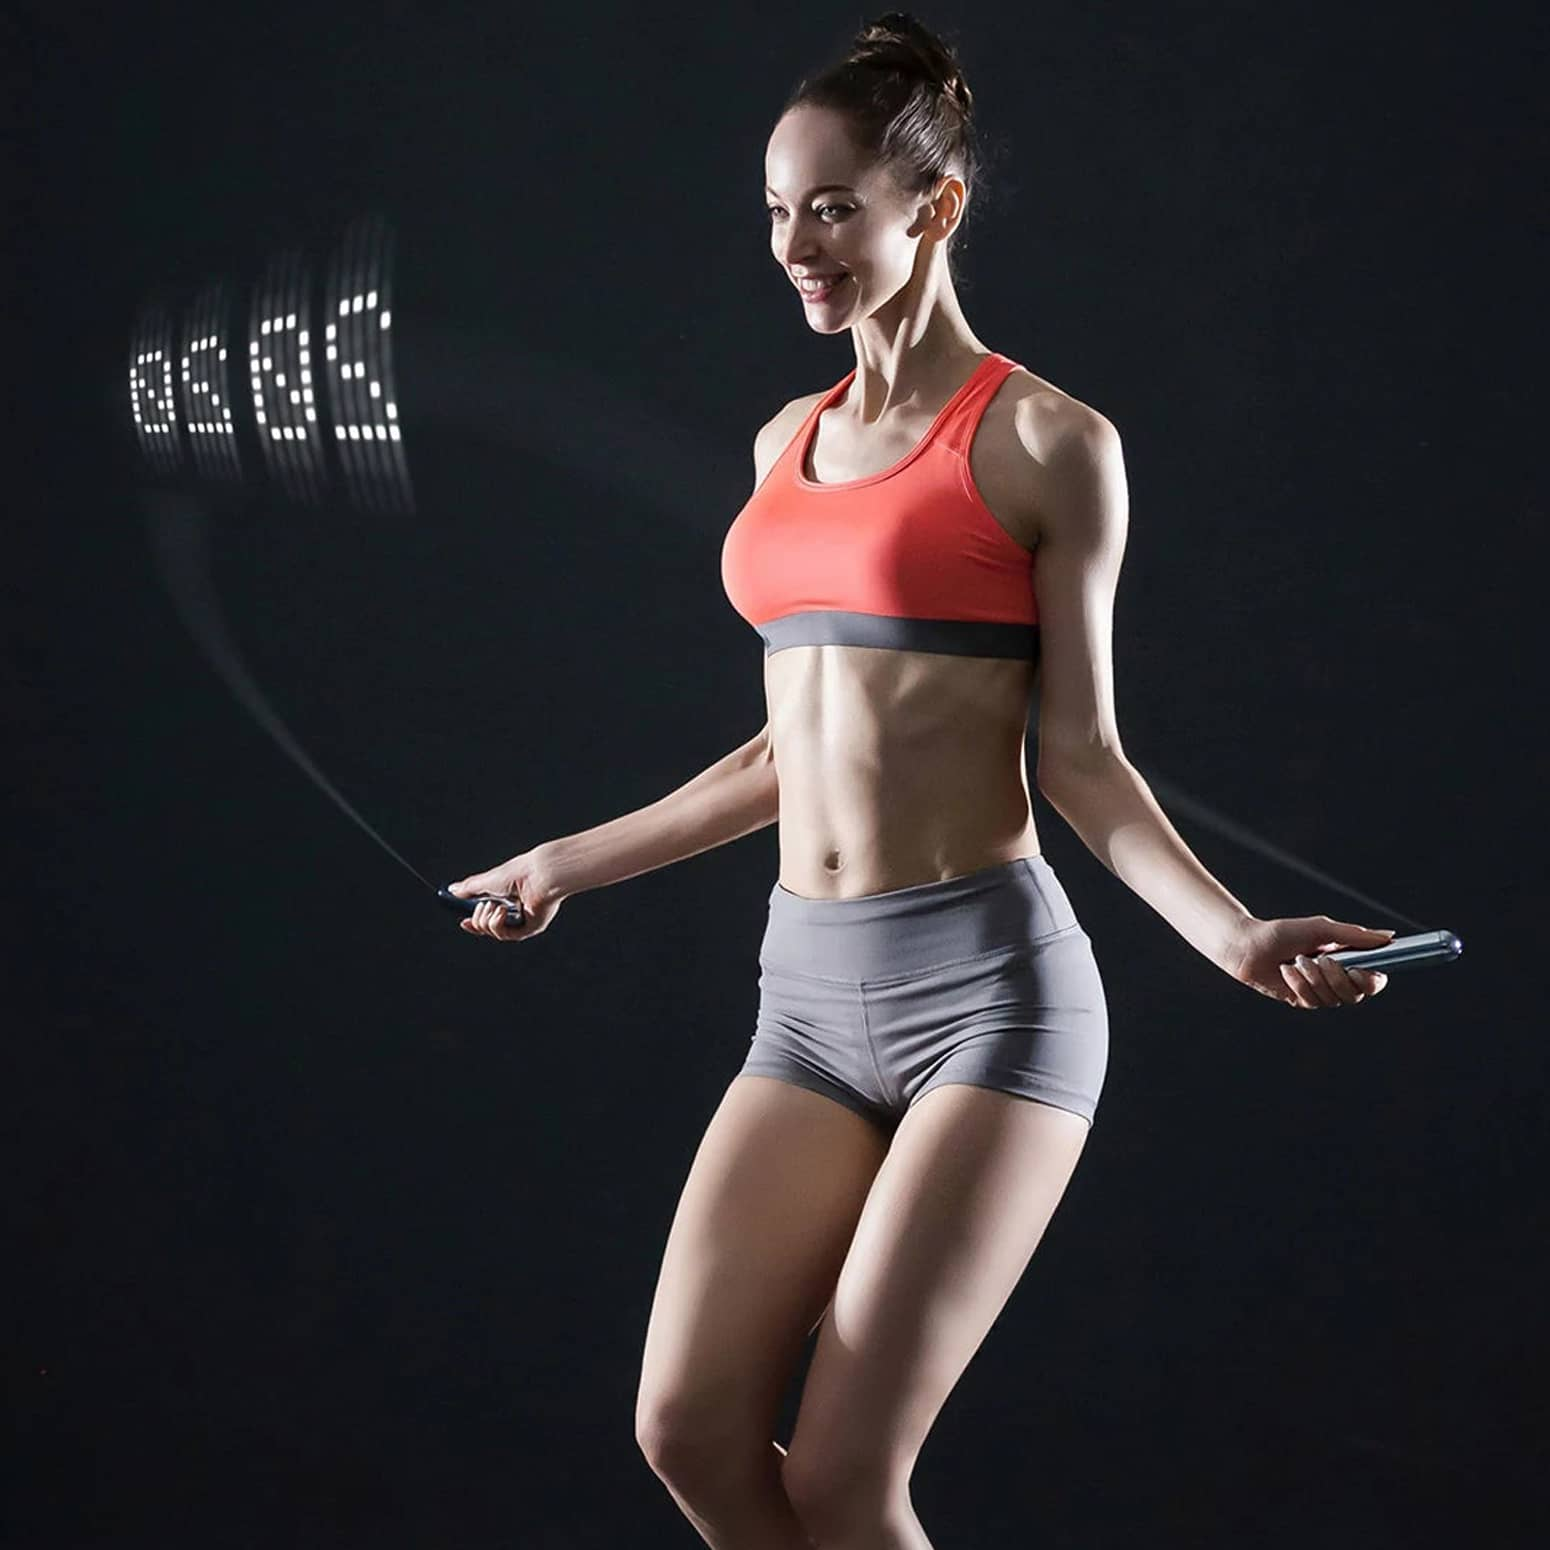 Smart Rope - LED Jump Rope Displays Count In Mid-Air